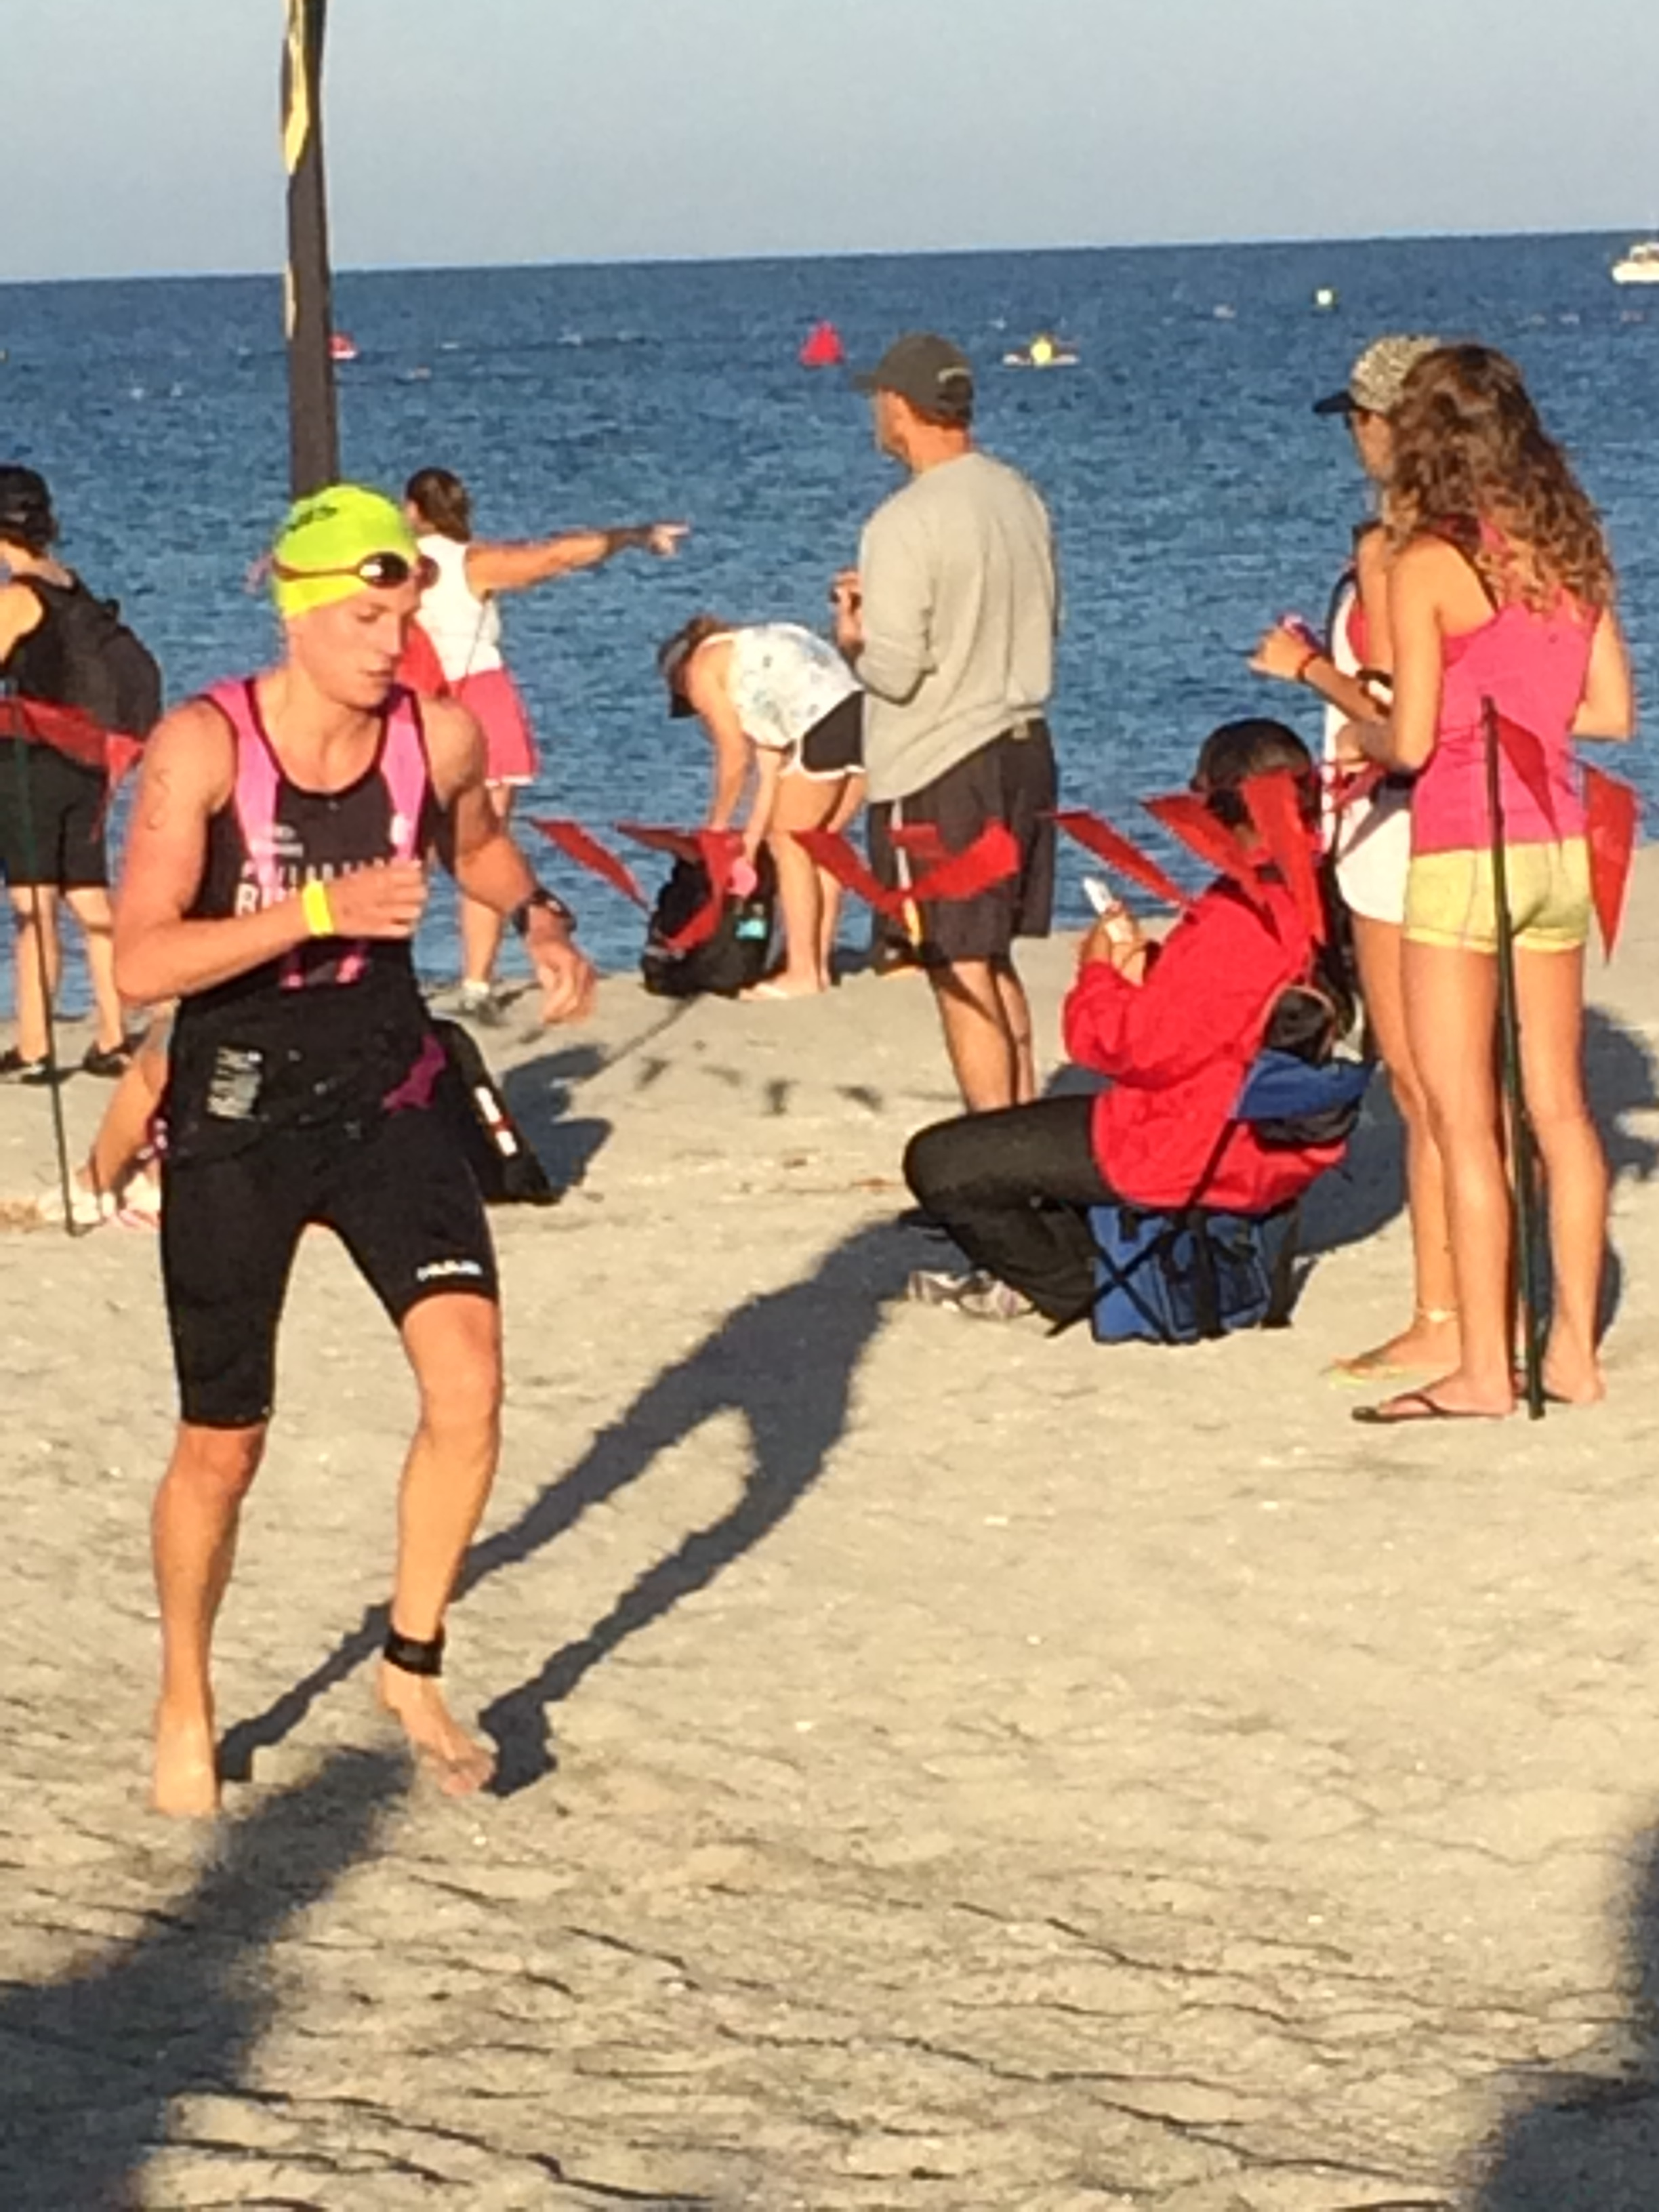 Exiting the swim and running across the beach in 5th place.